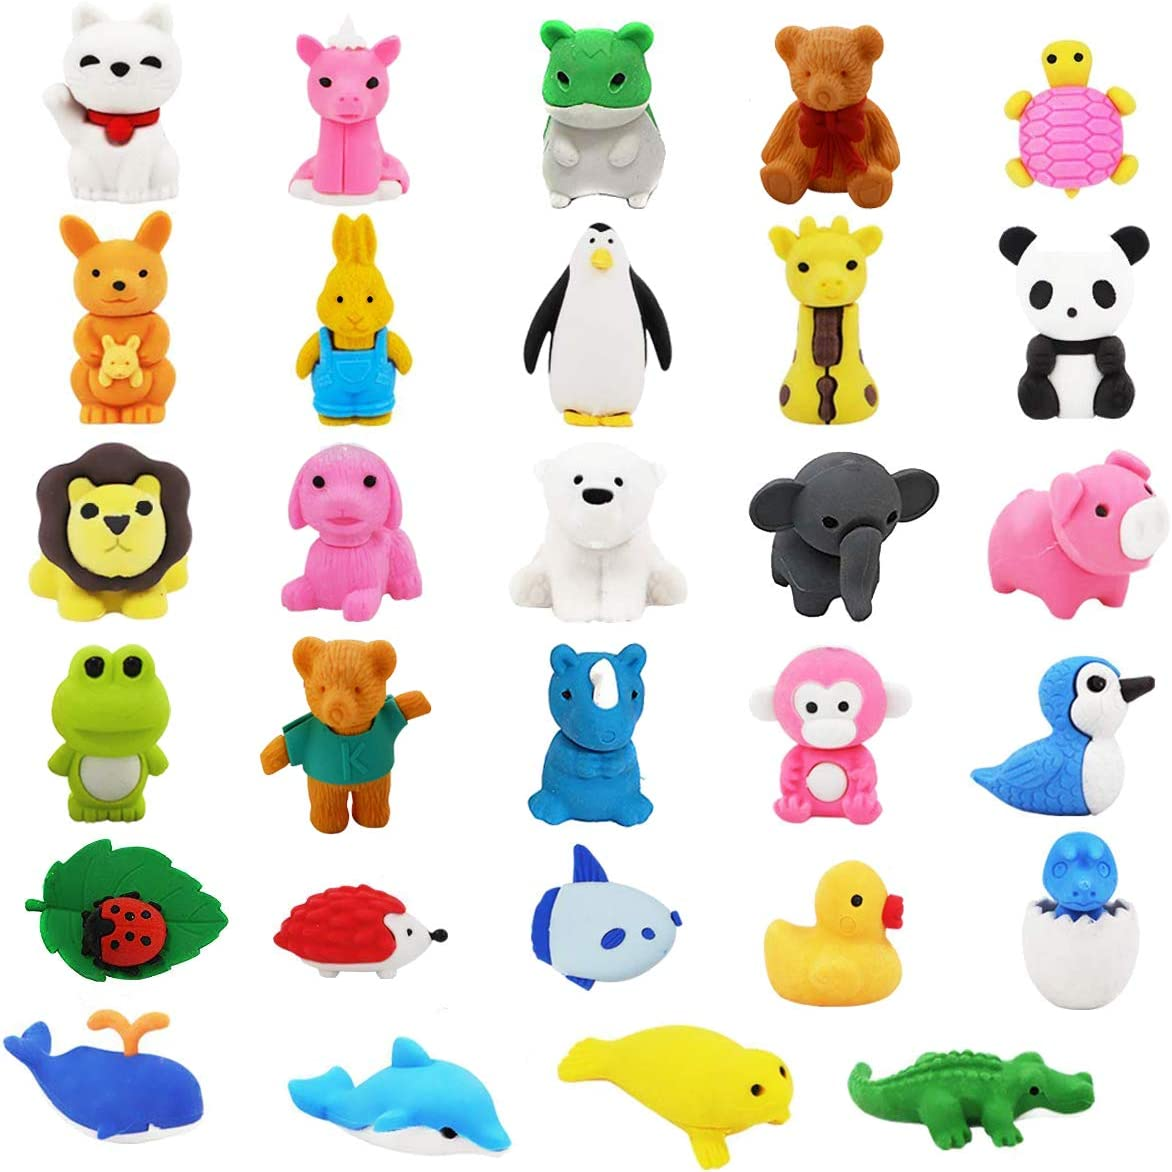 LanMa Pencil Erasers Zoo Animals Erasers Non-Toxic Take Apart Erasers for Classroom Prizes Party Gifts - 32Pack